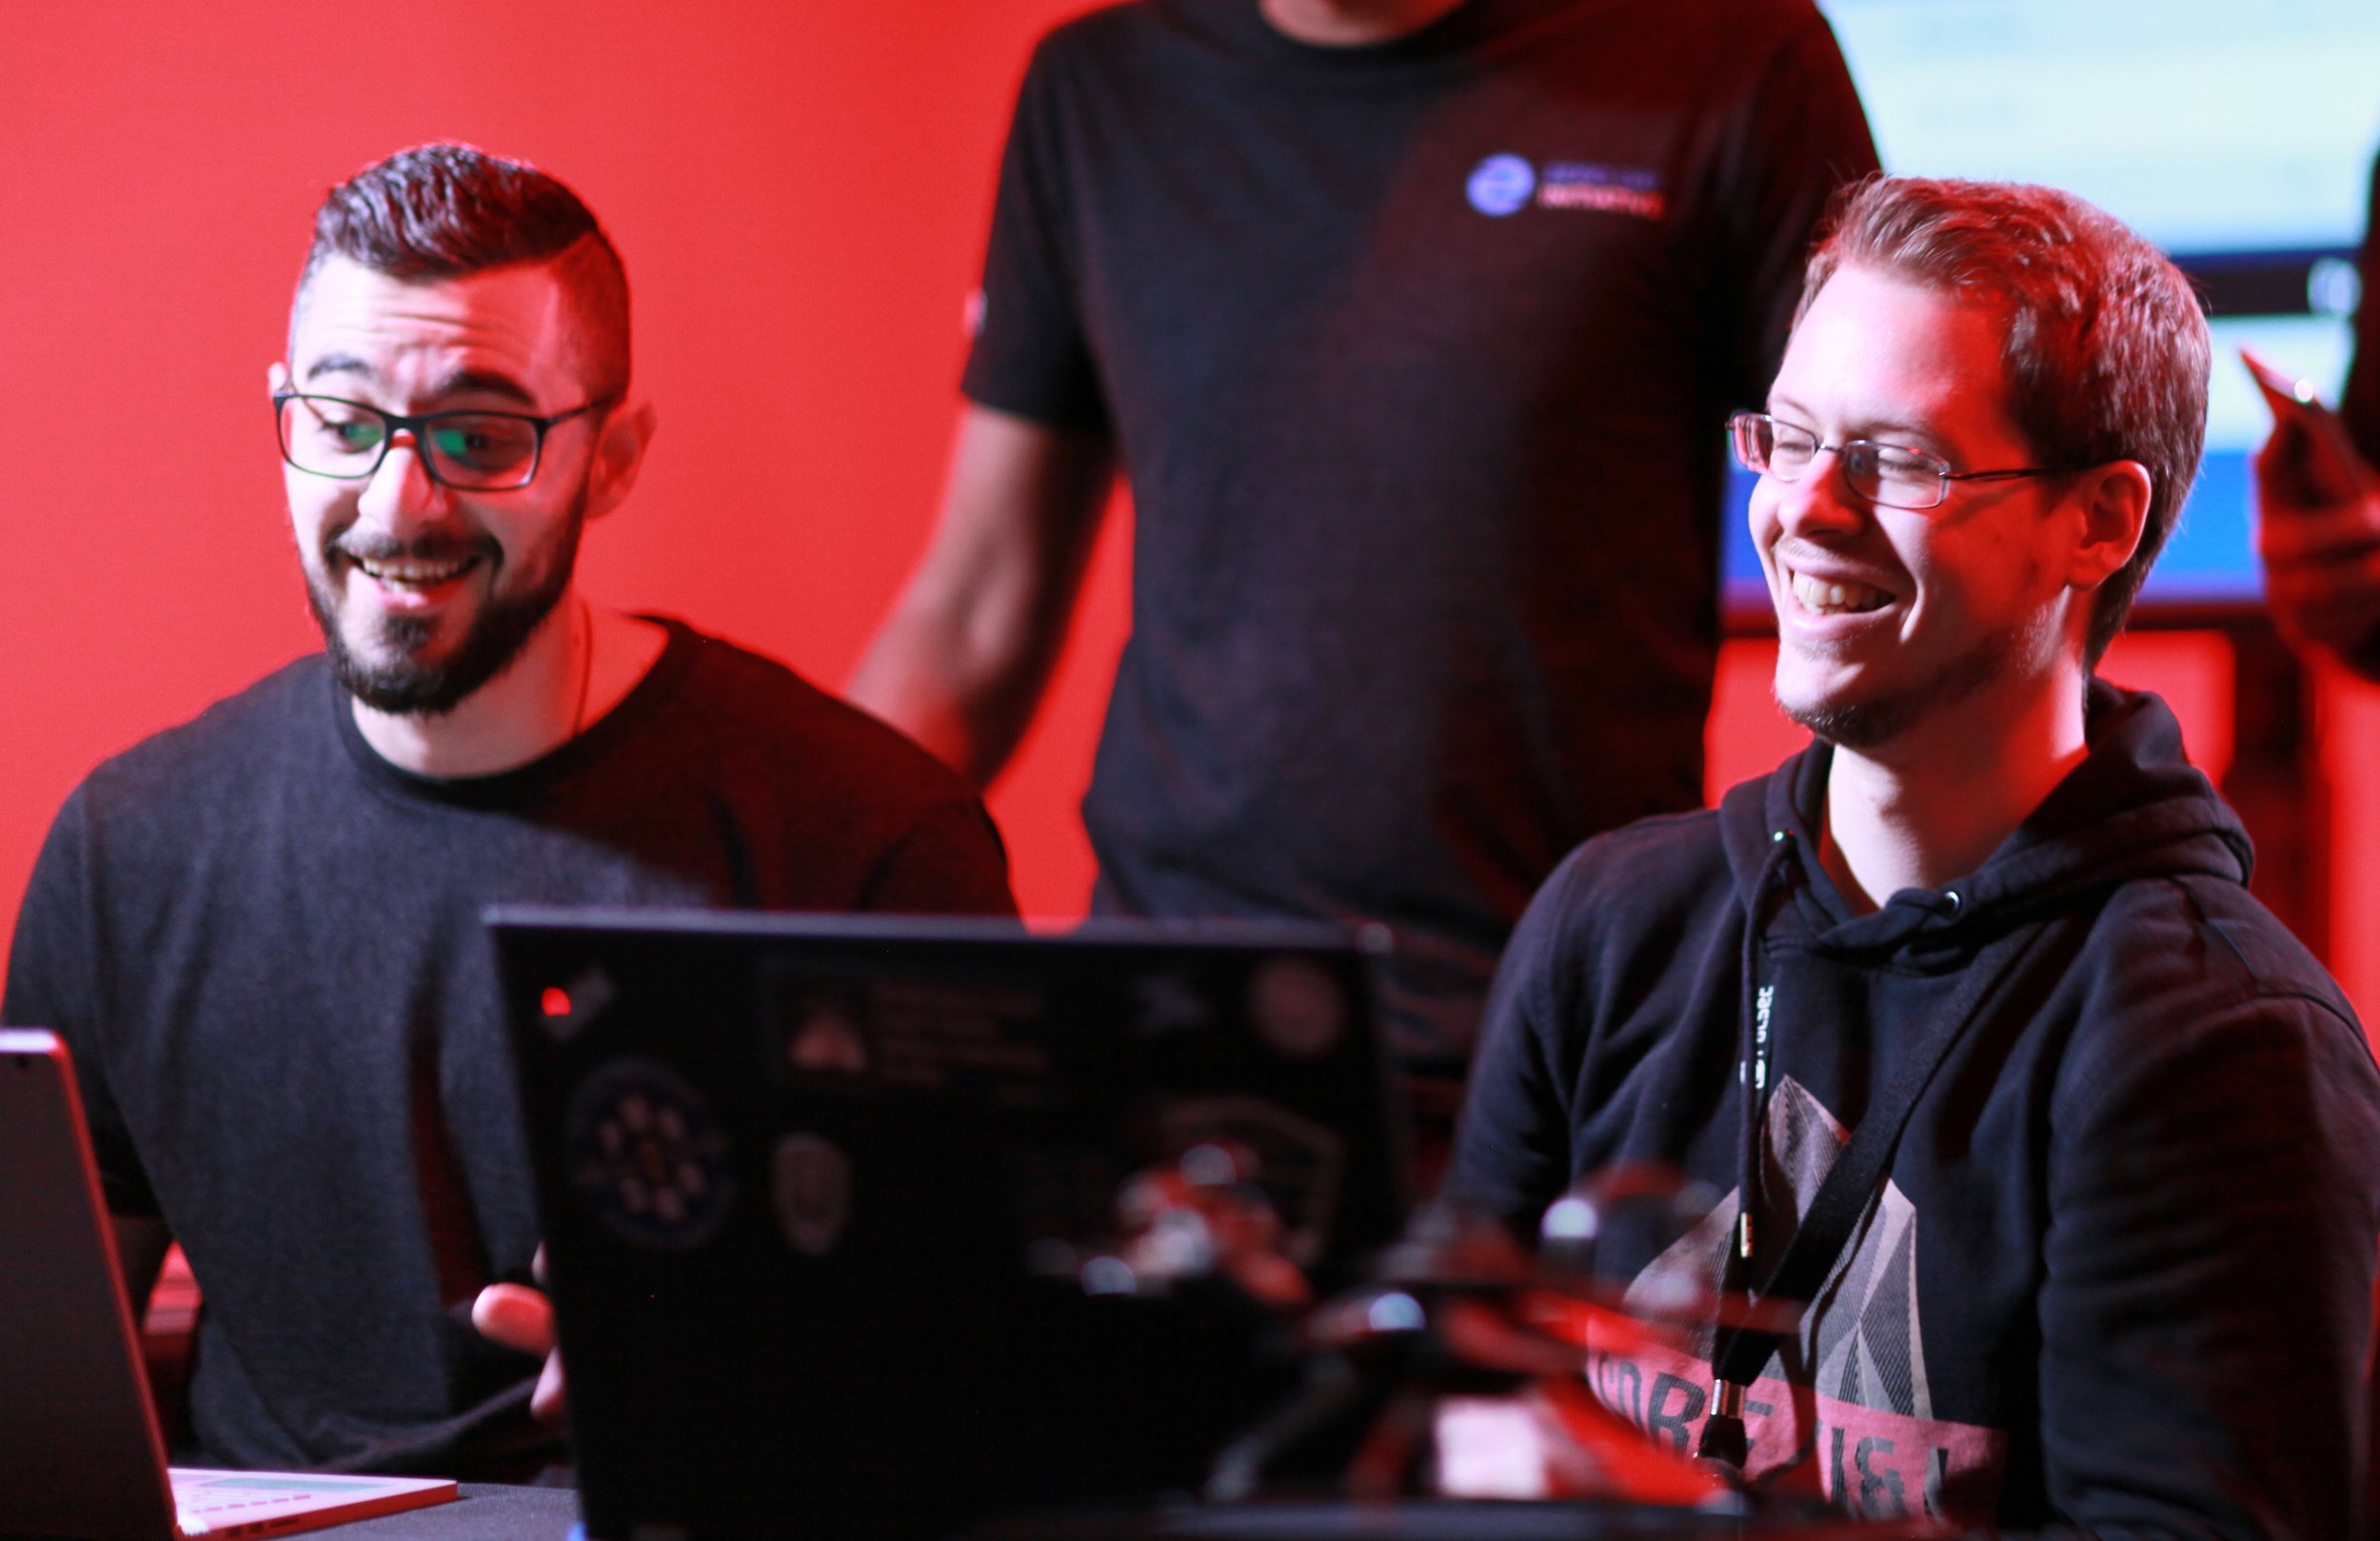 Niklas Baumstark and ZDI researcher Abdul-Aziz Hariri watch a successful Oracle VirtualBox exploit